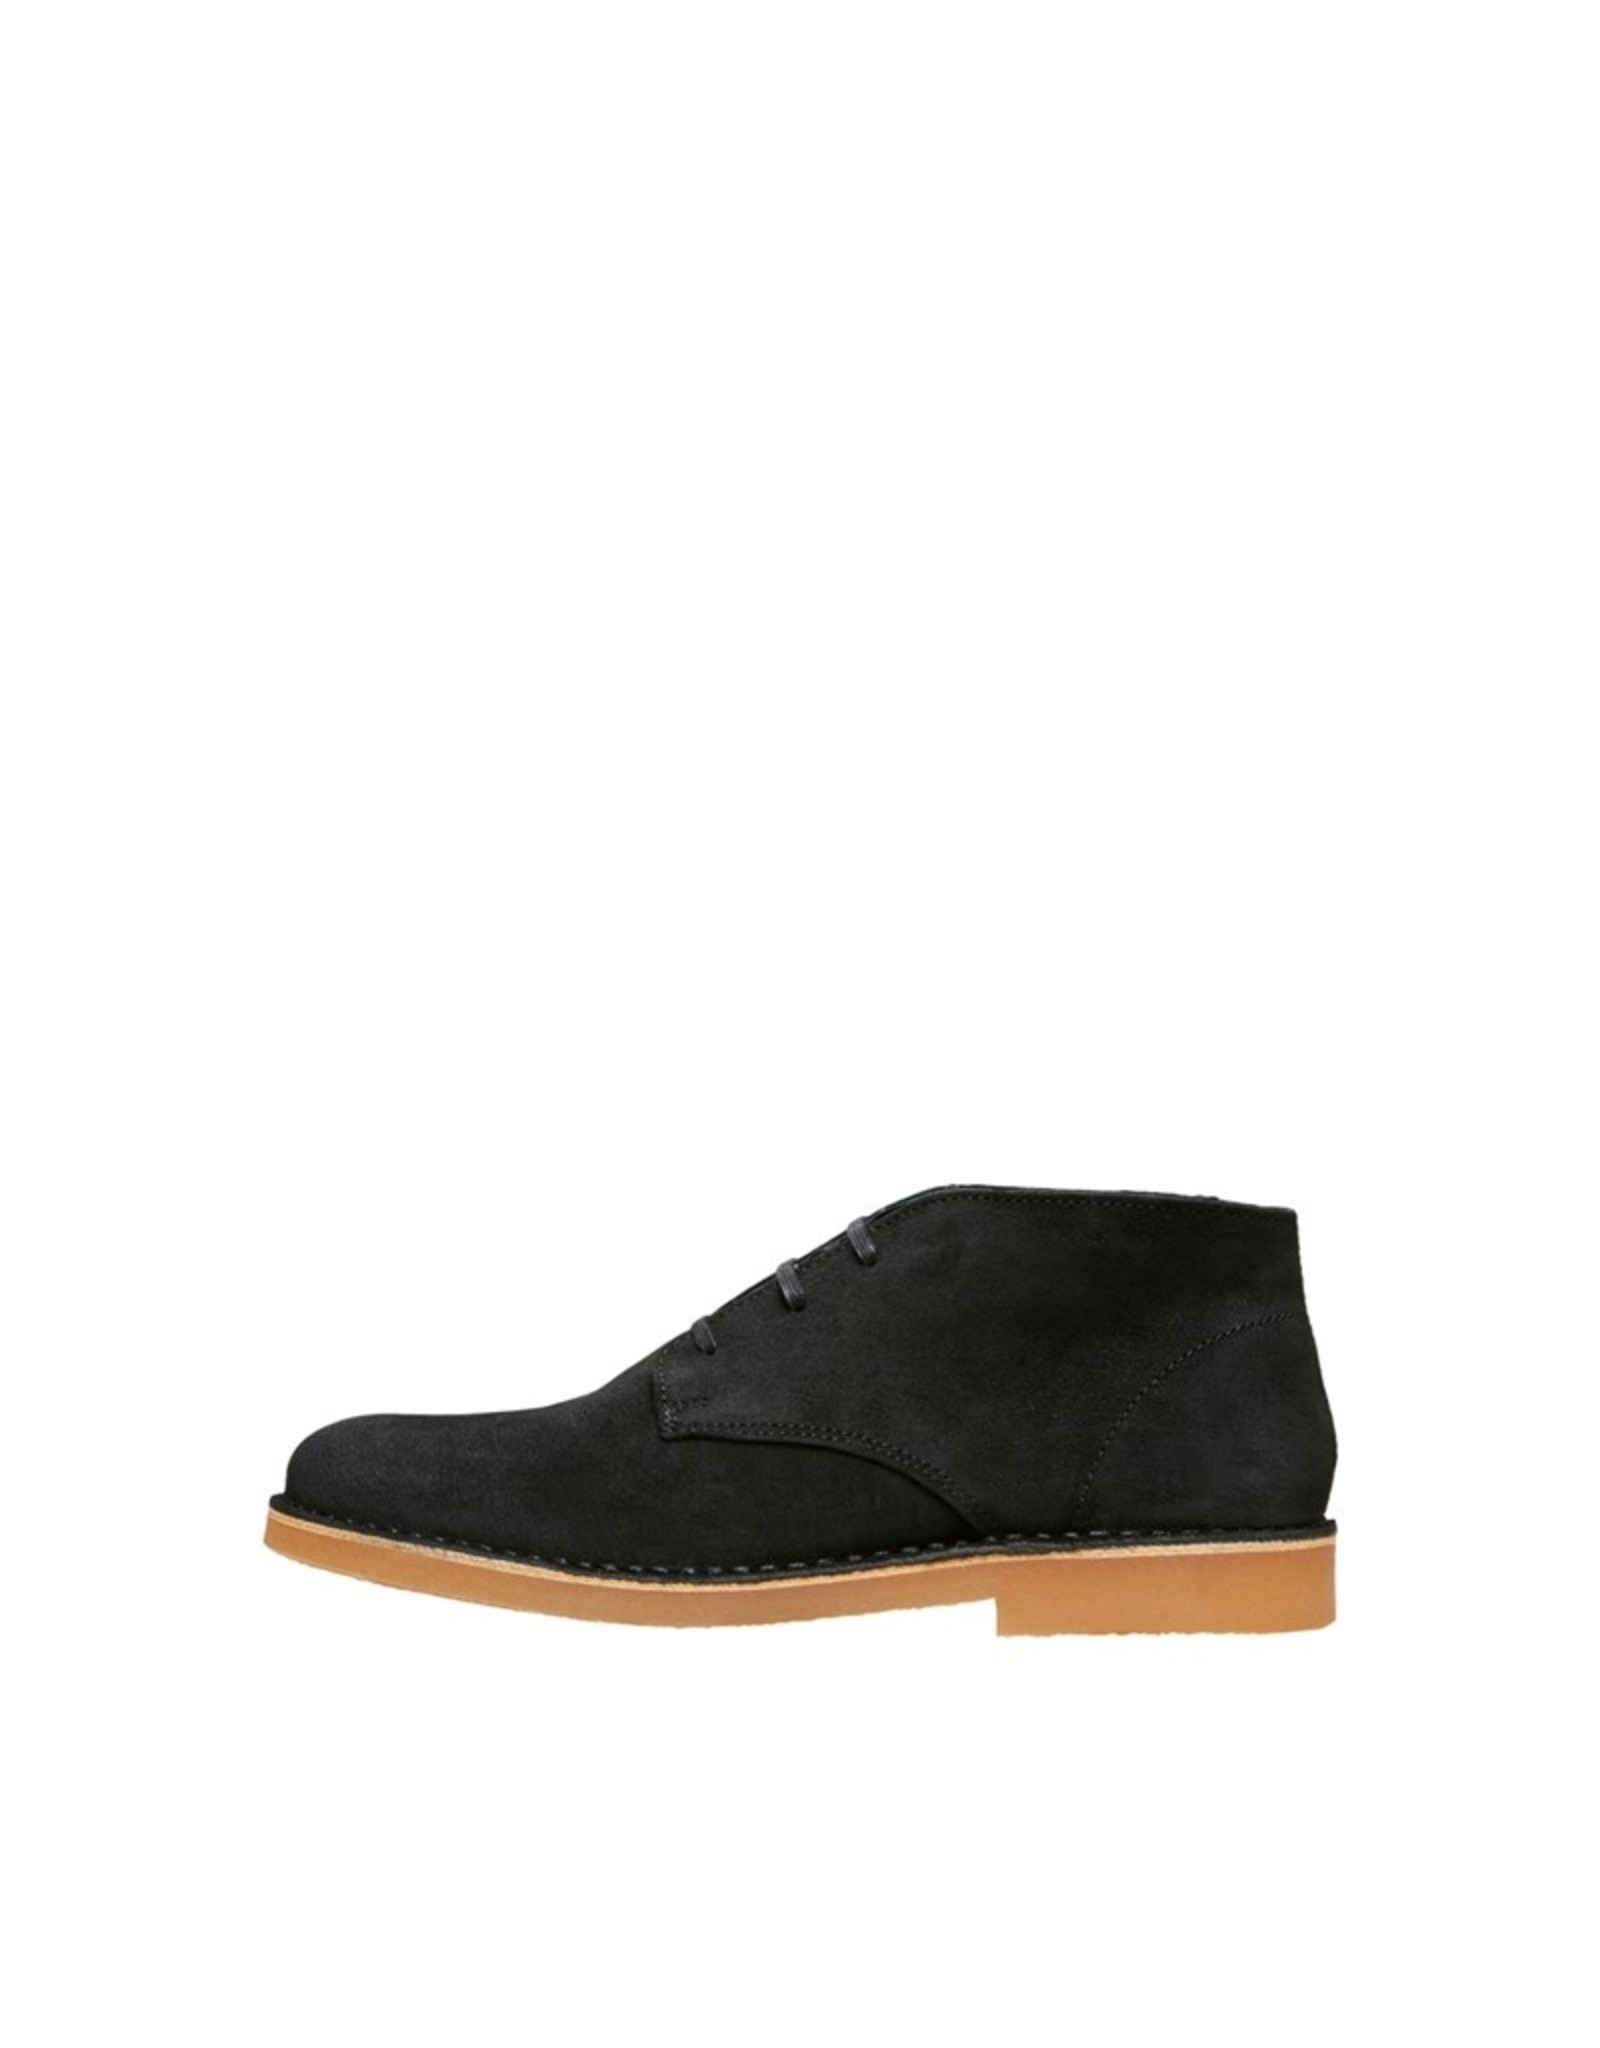 Selected Homme AW20-9-SE-Royce Boots 63422